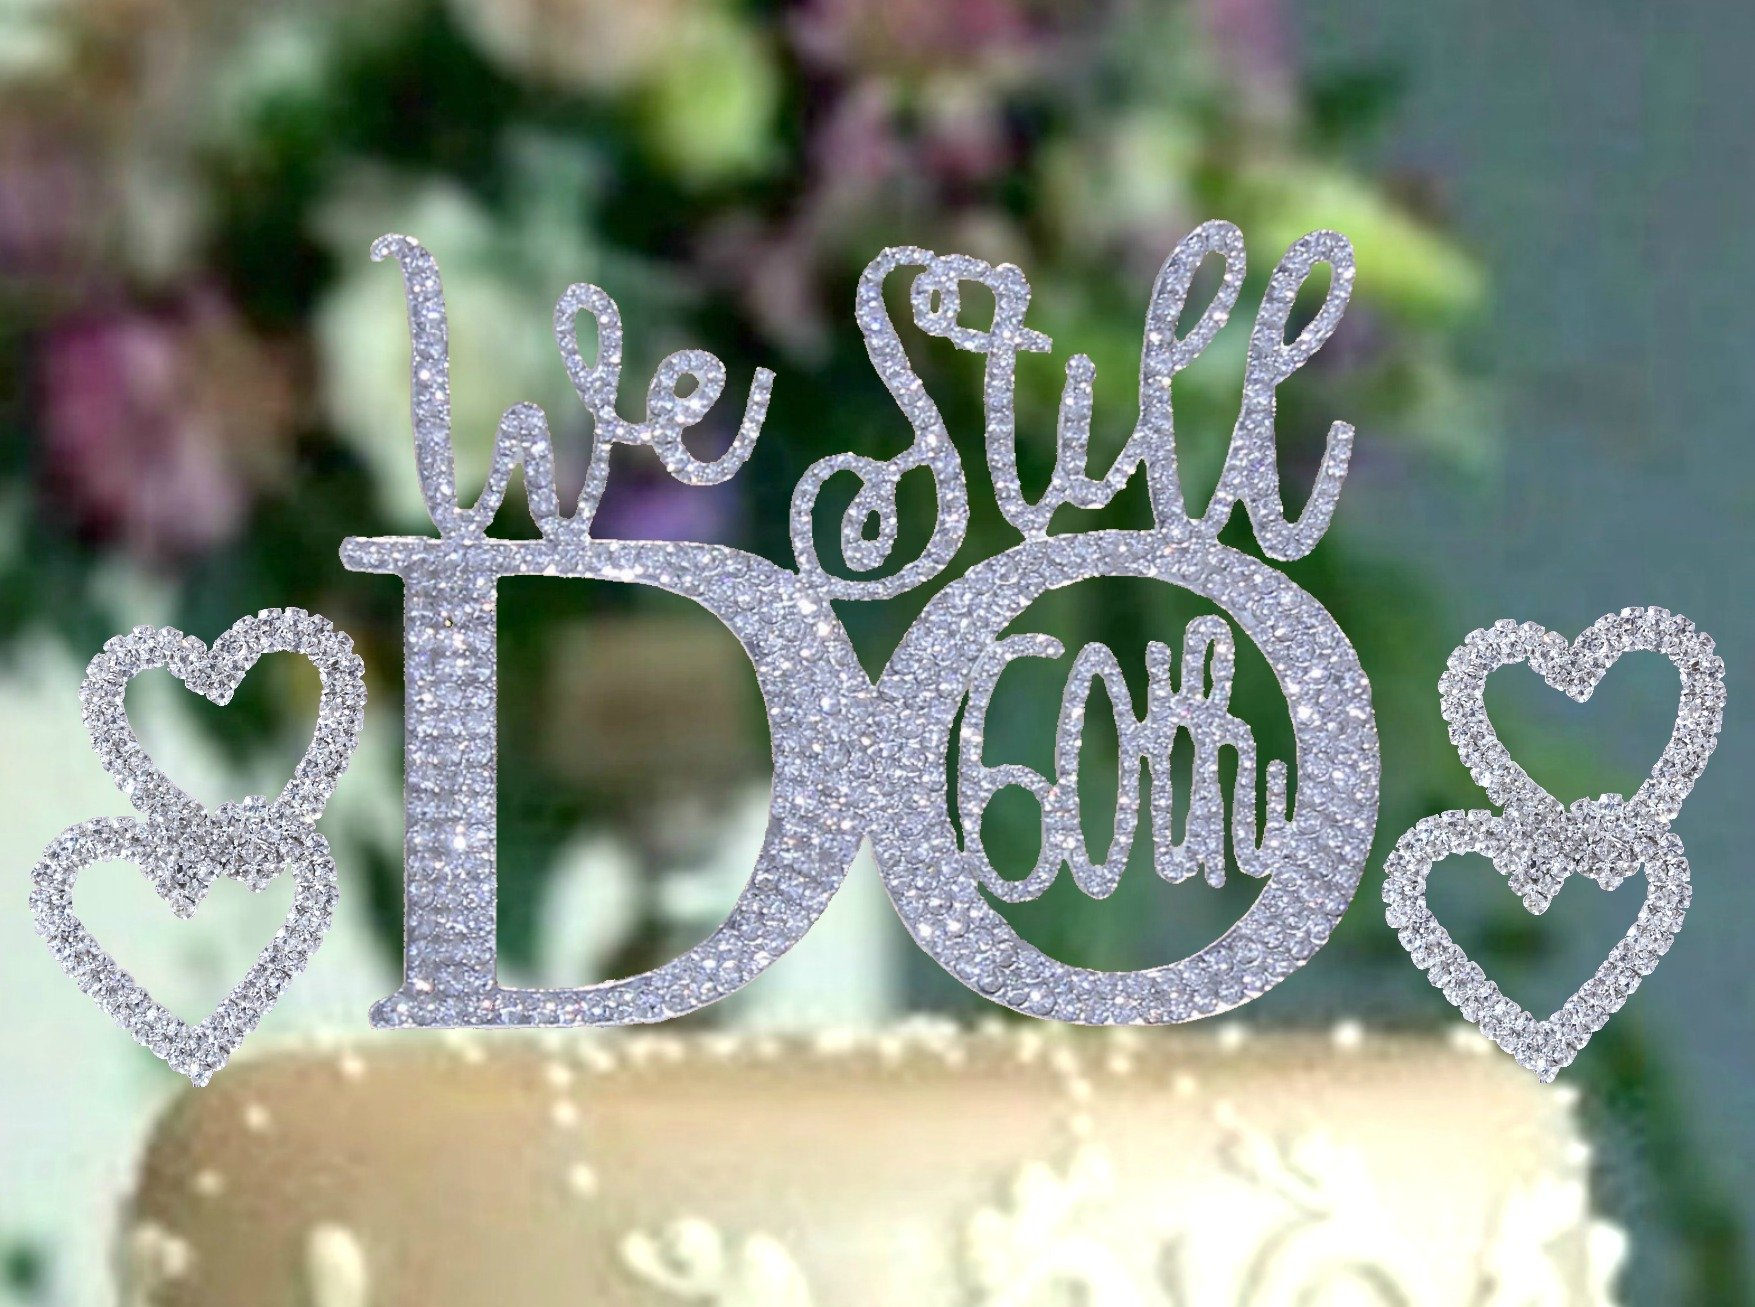 60th Anniversary cake topper in gorgeous silver crystal rhinestones''We Still Do 60th'' vow renewal wedding anniversary party cake topper (60th topper with hearts)